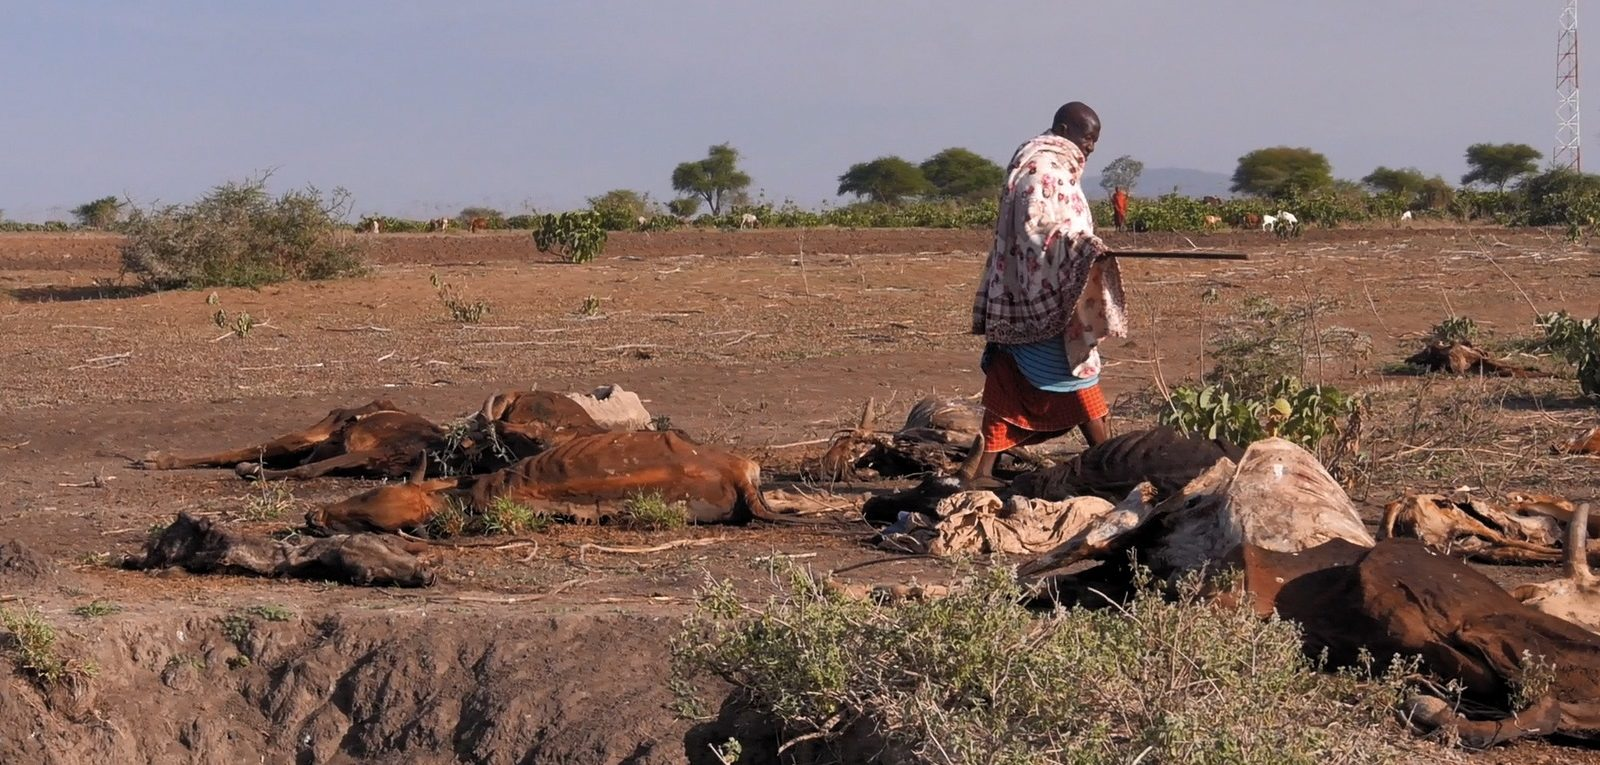 Aid for livestock during droughts: Learning to be prepared for a drought